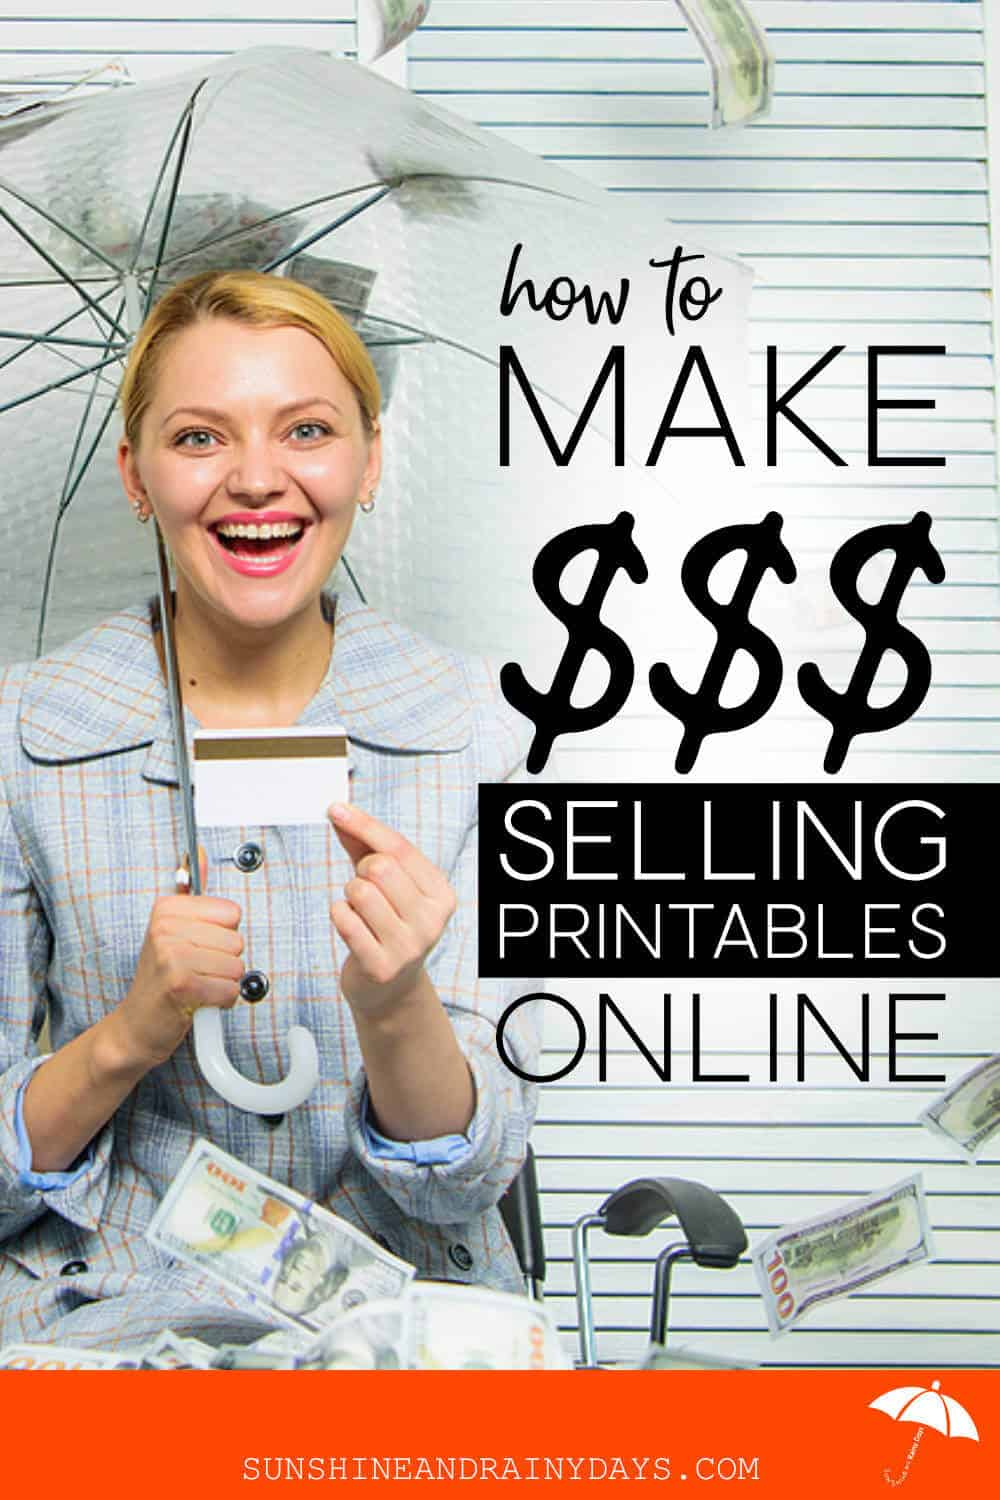 Lady holding an umbrella with money raining down on her from selling printables on her blog.